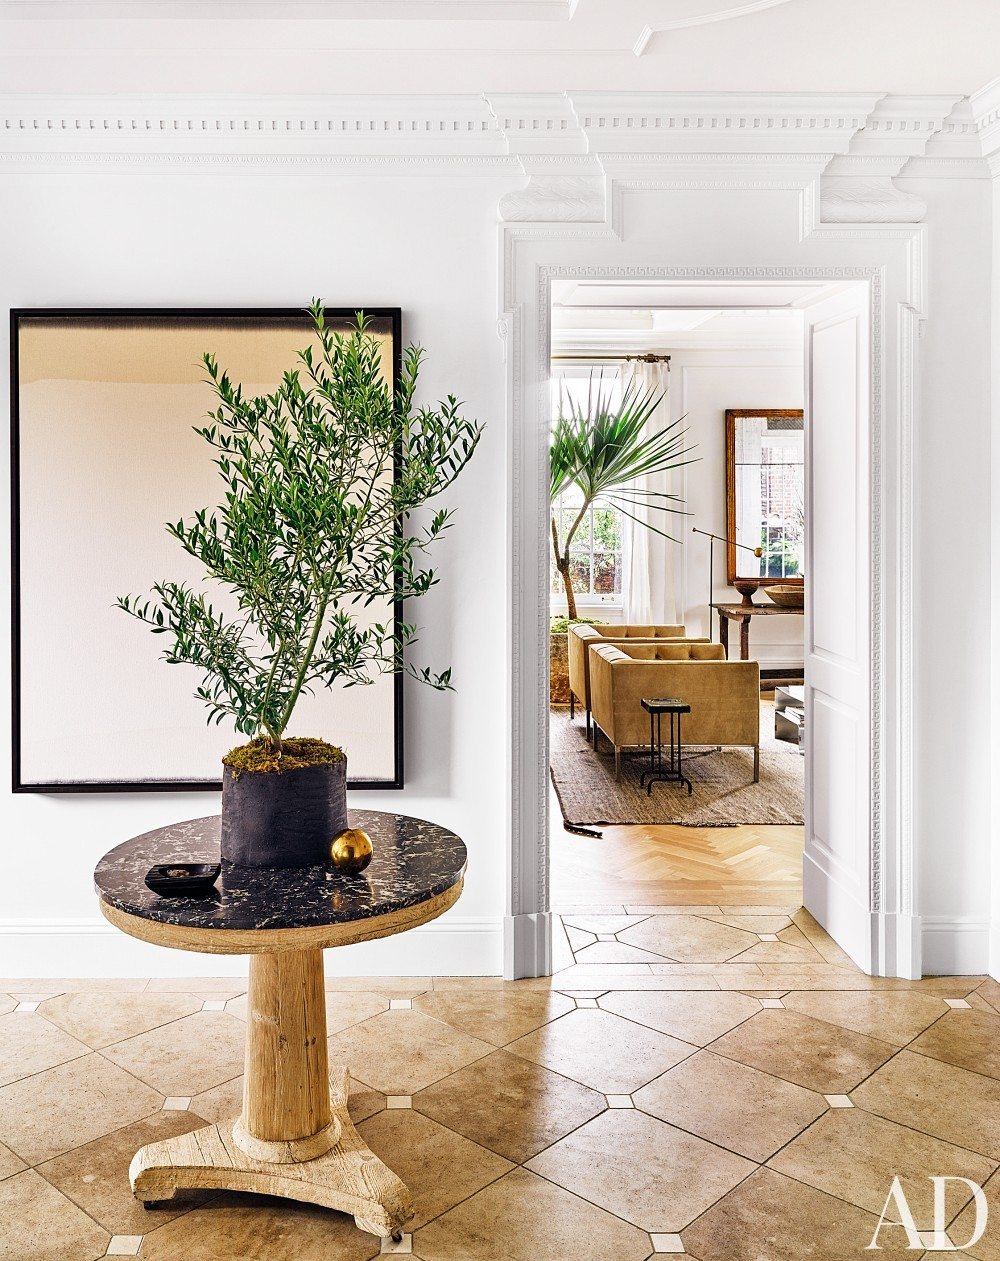 Entrance Hall by Nate Berkus and Jeremiah Brent in New York, NY